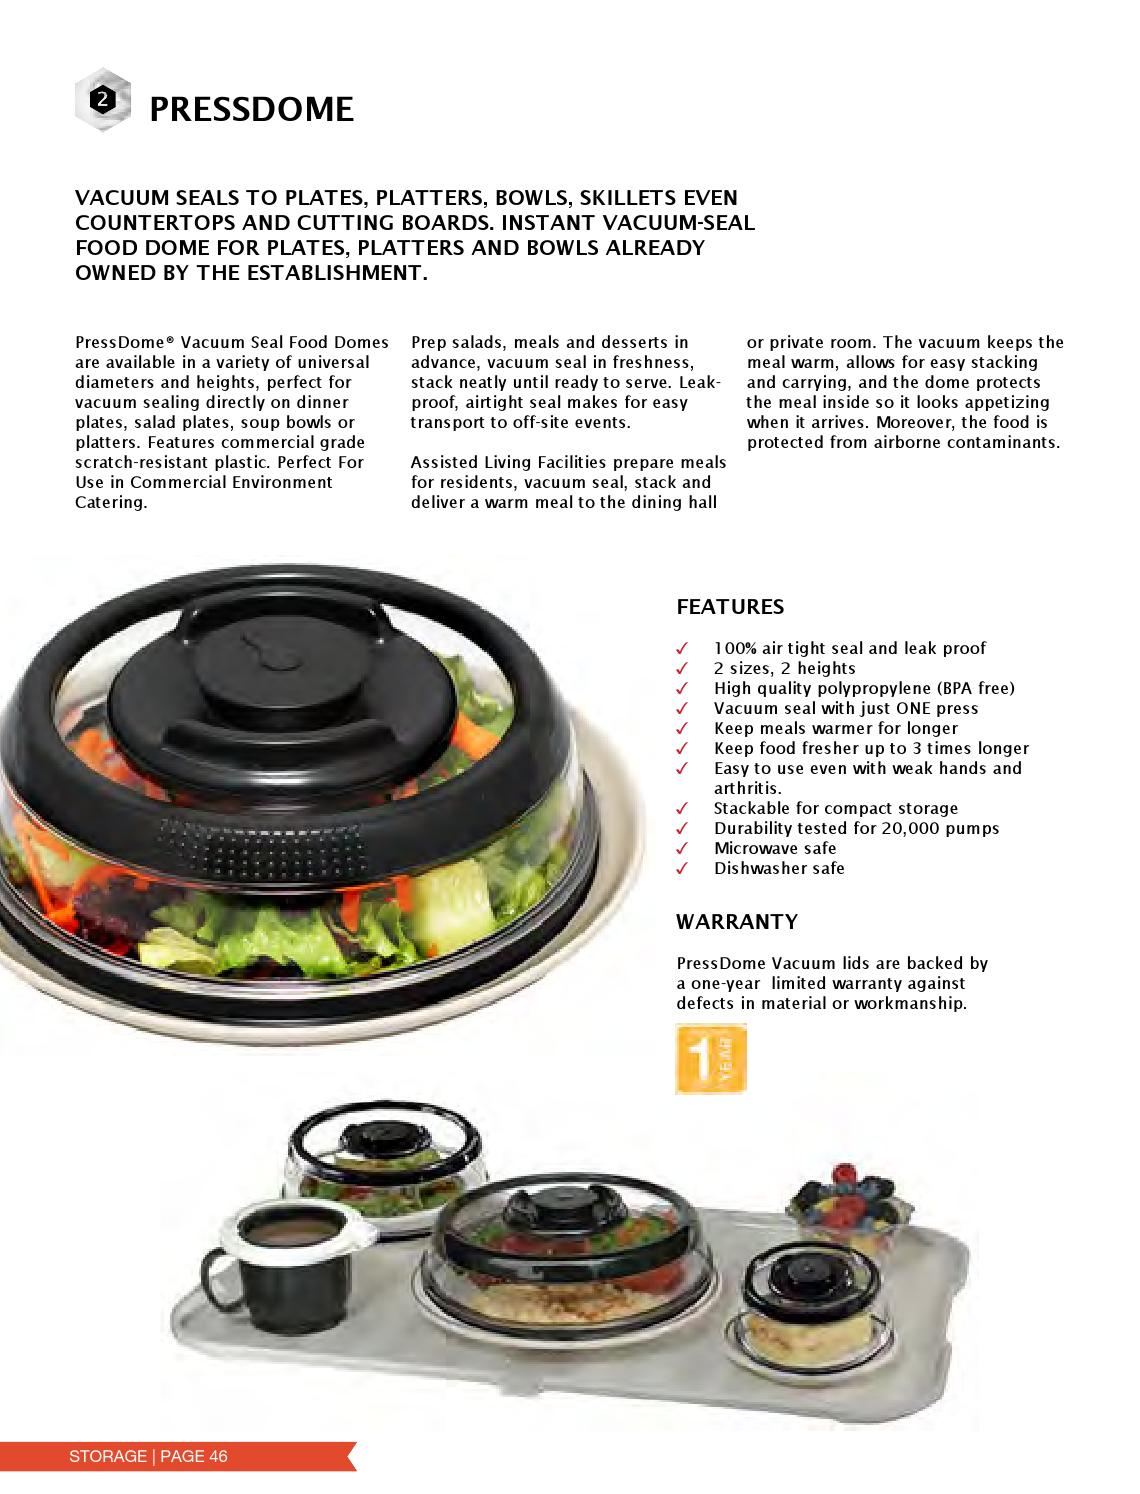 Bonzer® product guide 2015 by Kat Cooper - issuu